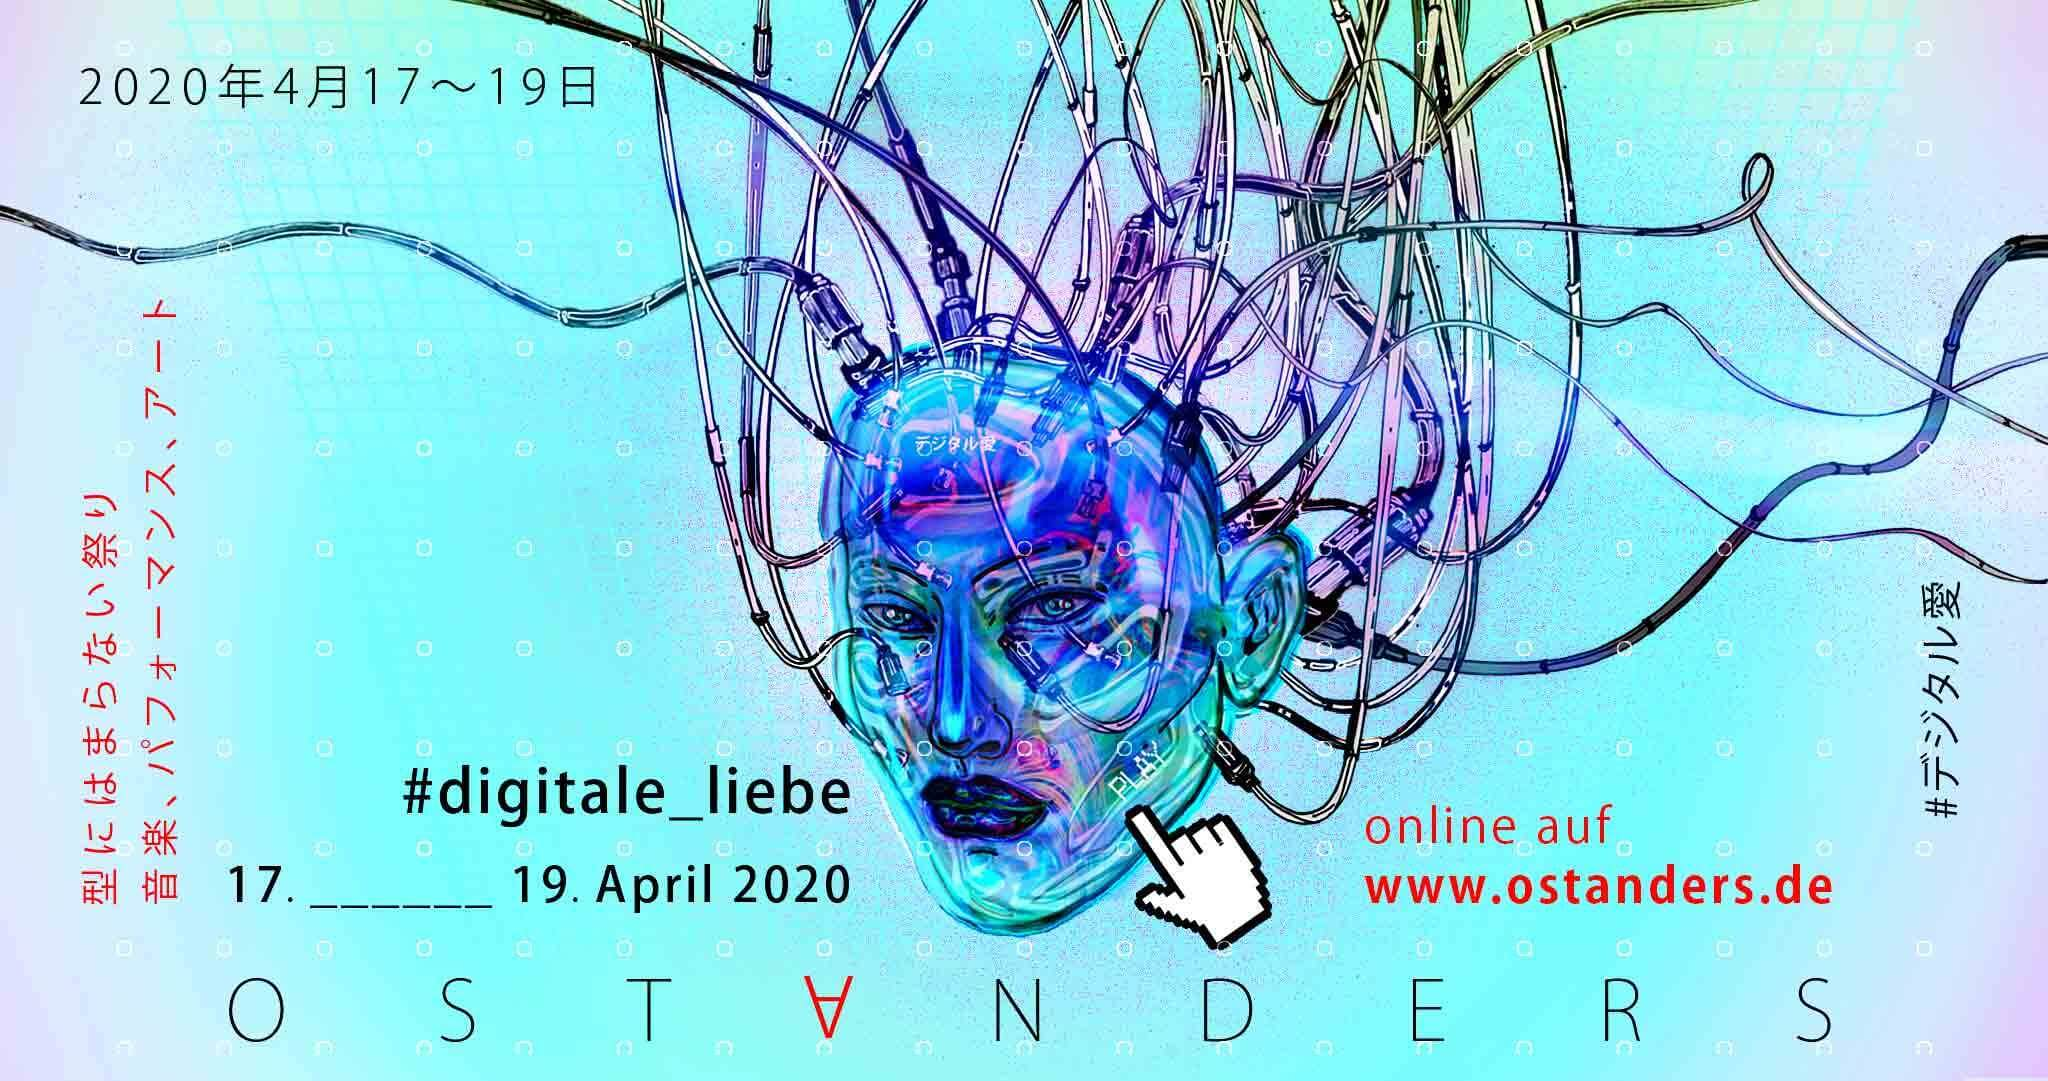 Ost Anders Festival 2020 : #digitale_liebe